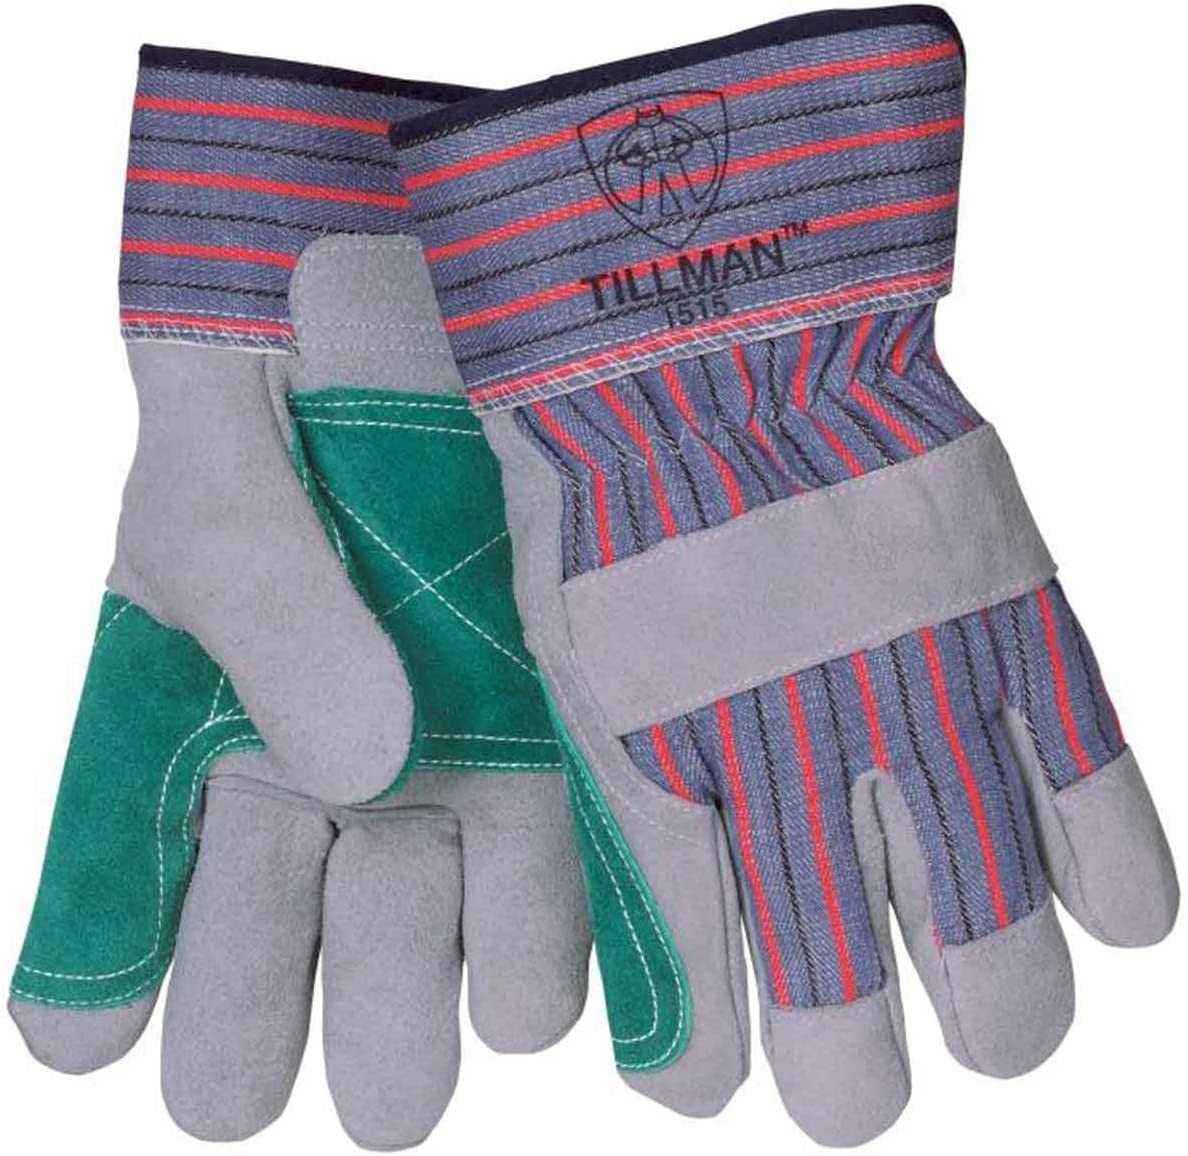 Tillman 1515X Standard Cowhide/Canvas Double Palm Work Gloves, X-Large |Pkg.12